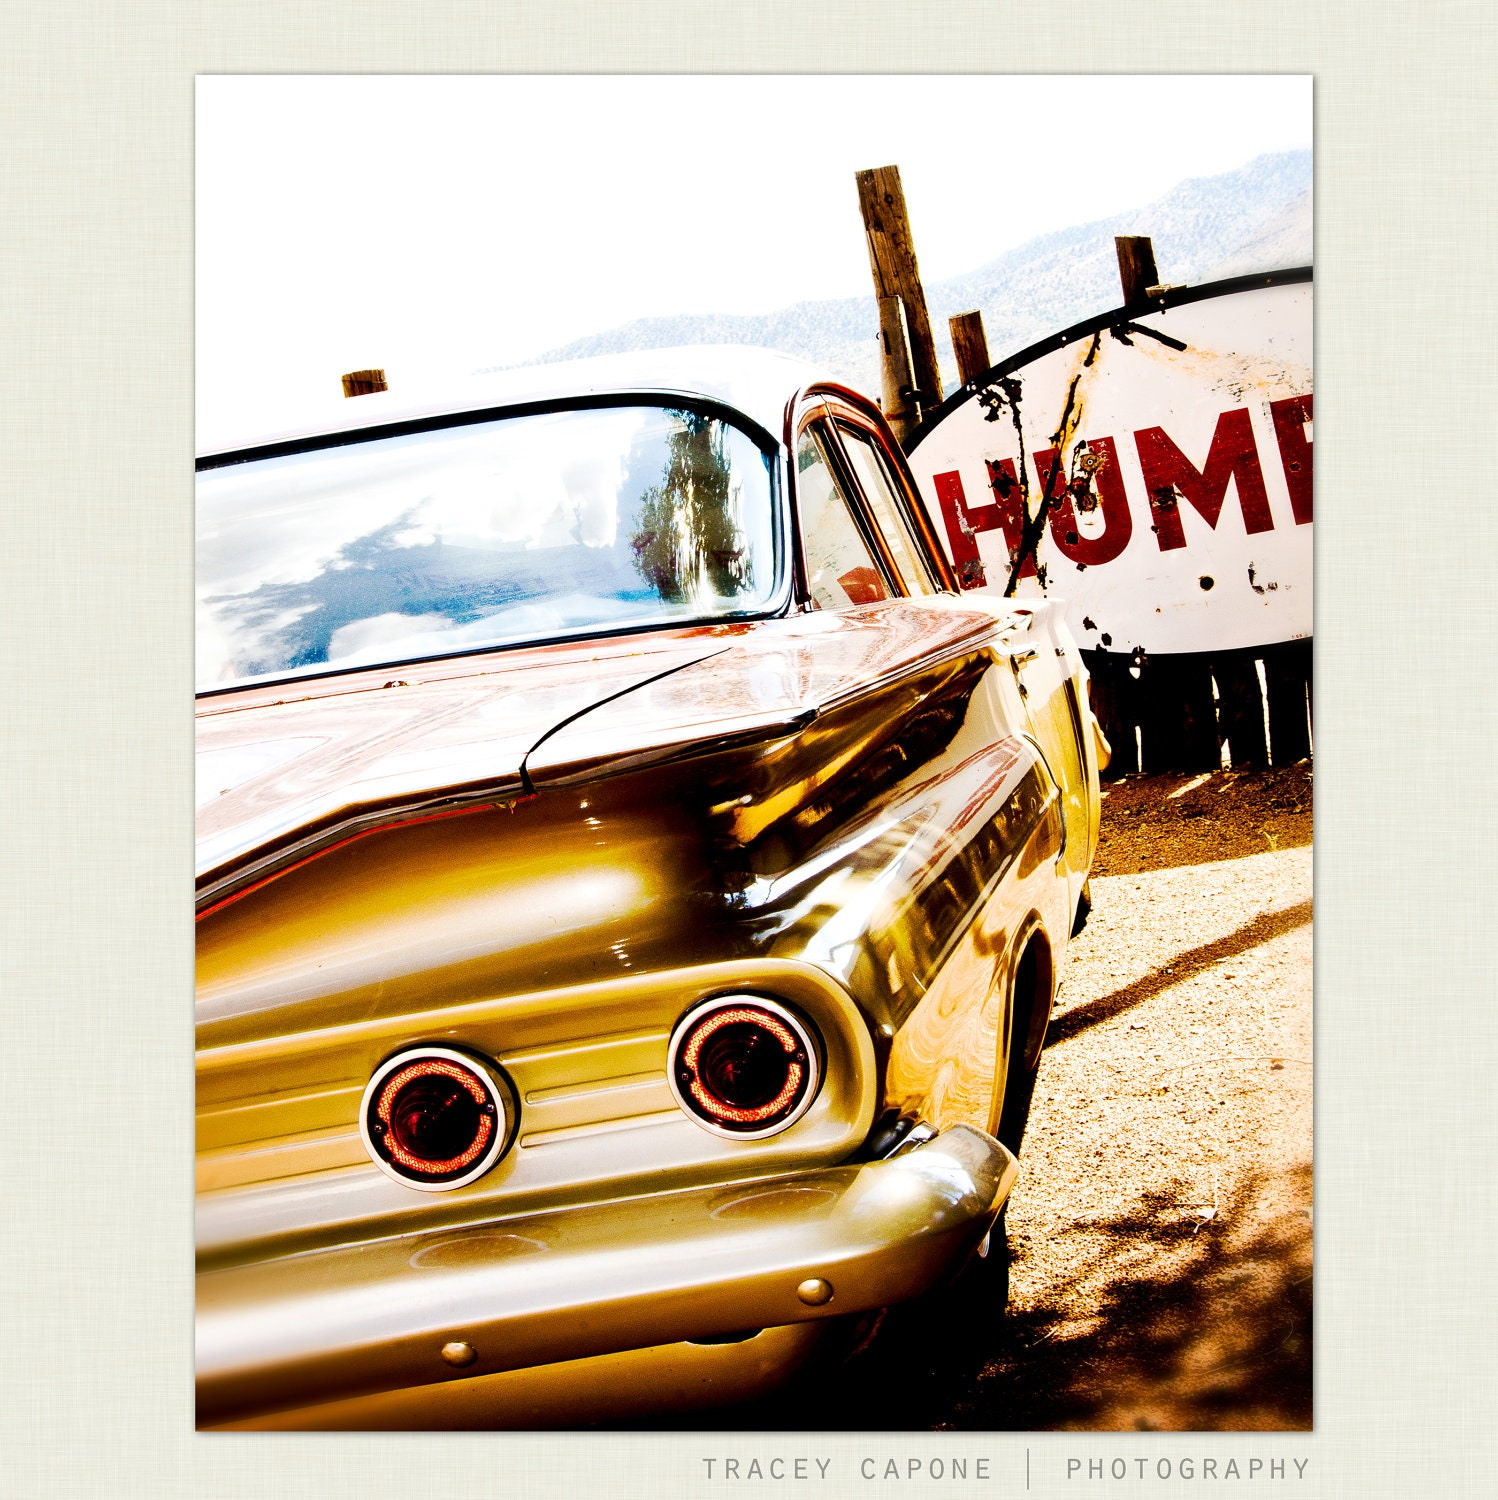 Vintage Auto Wall Decor : Photography wall decor vintage car photograph by traceycapone